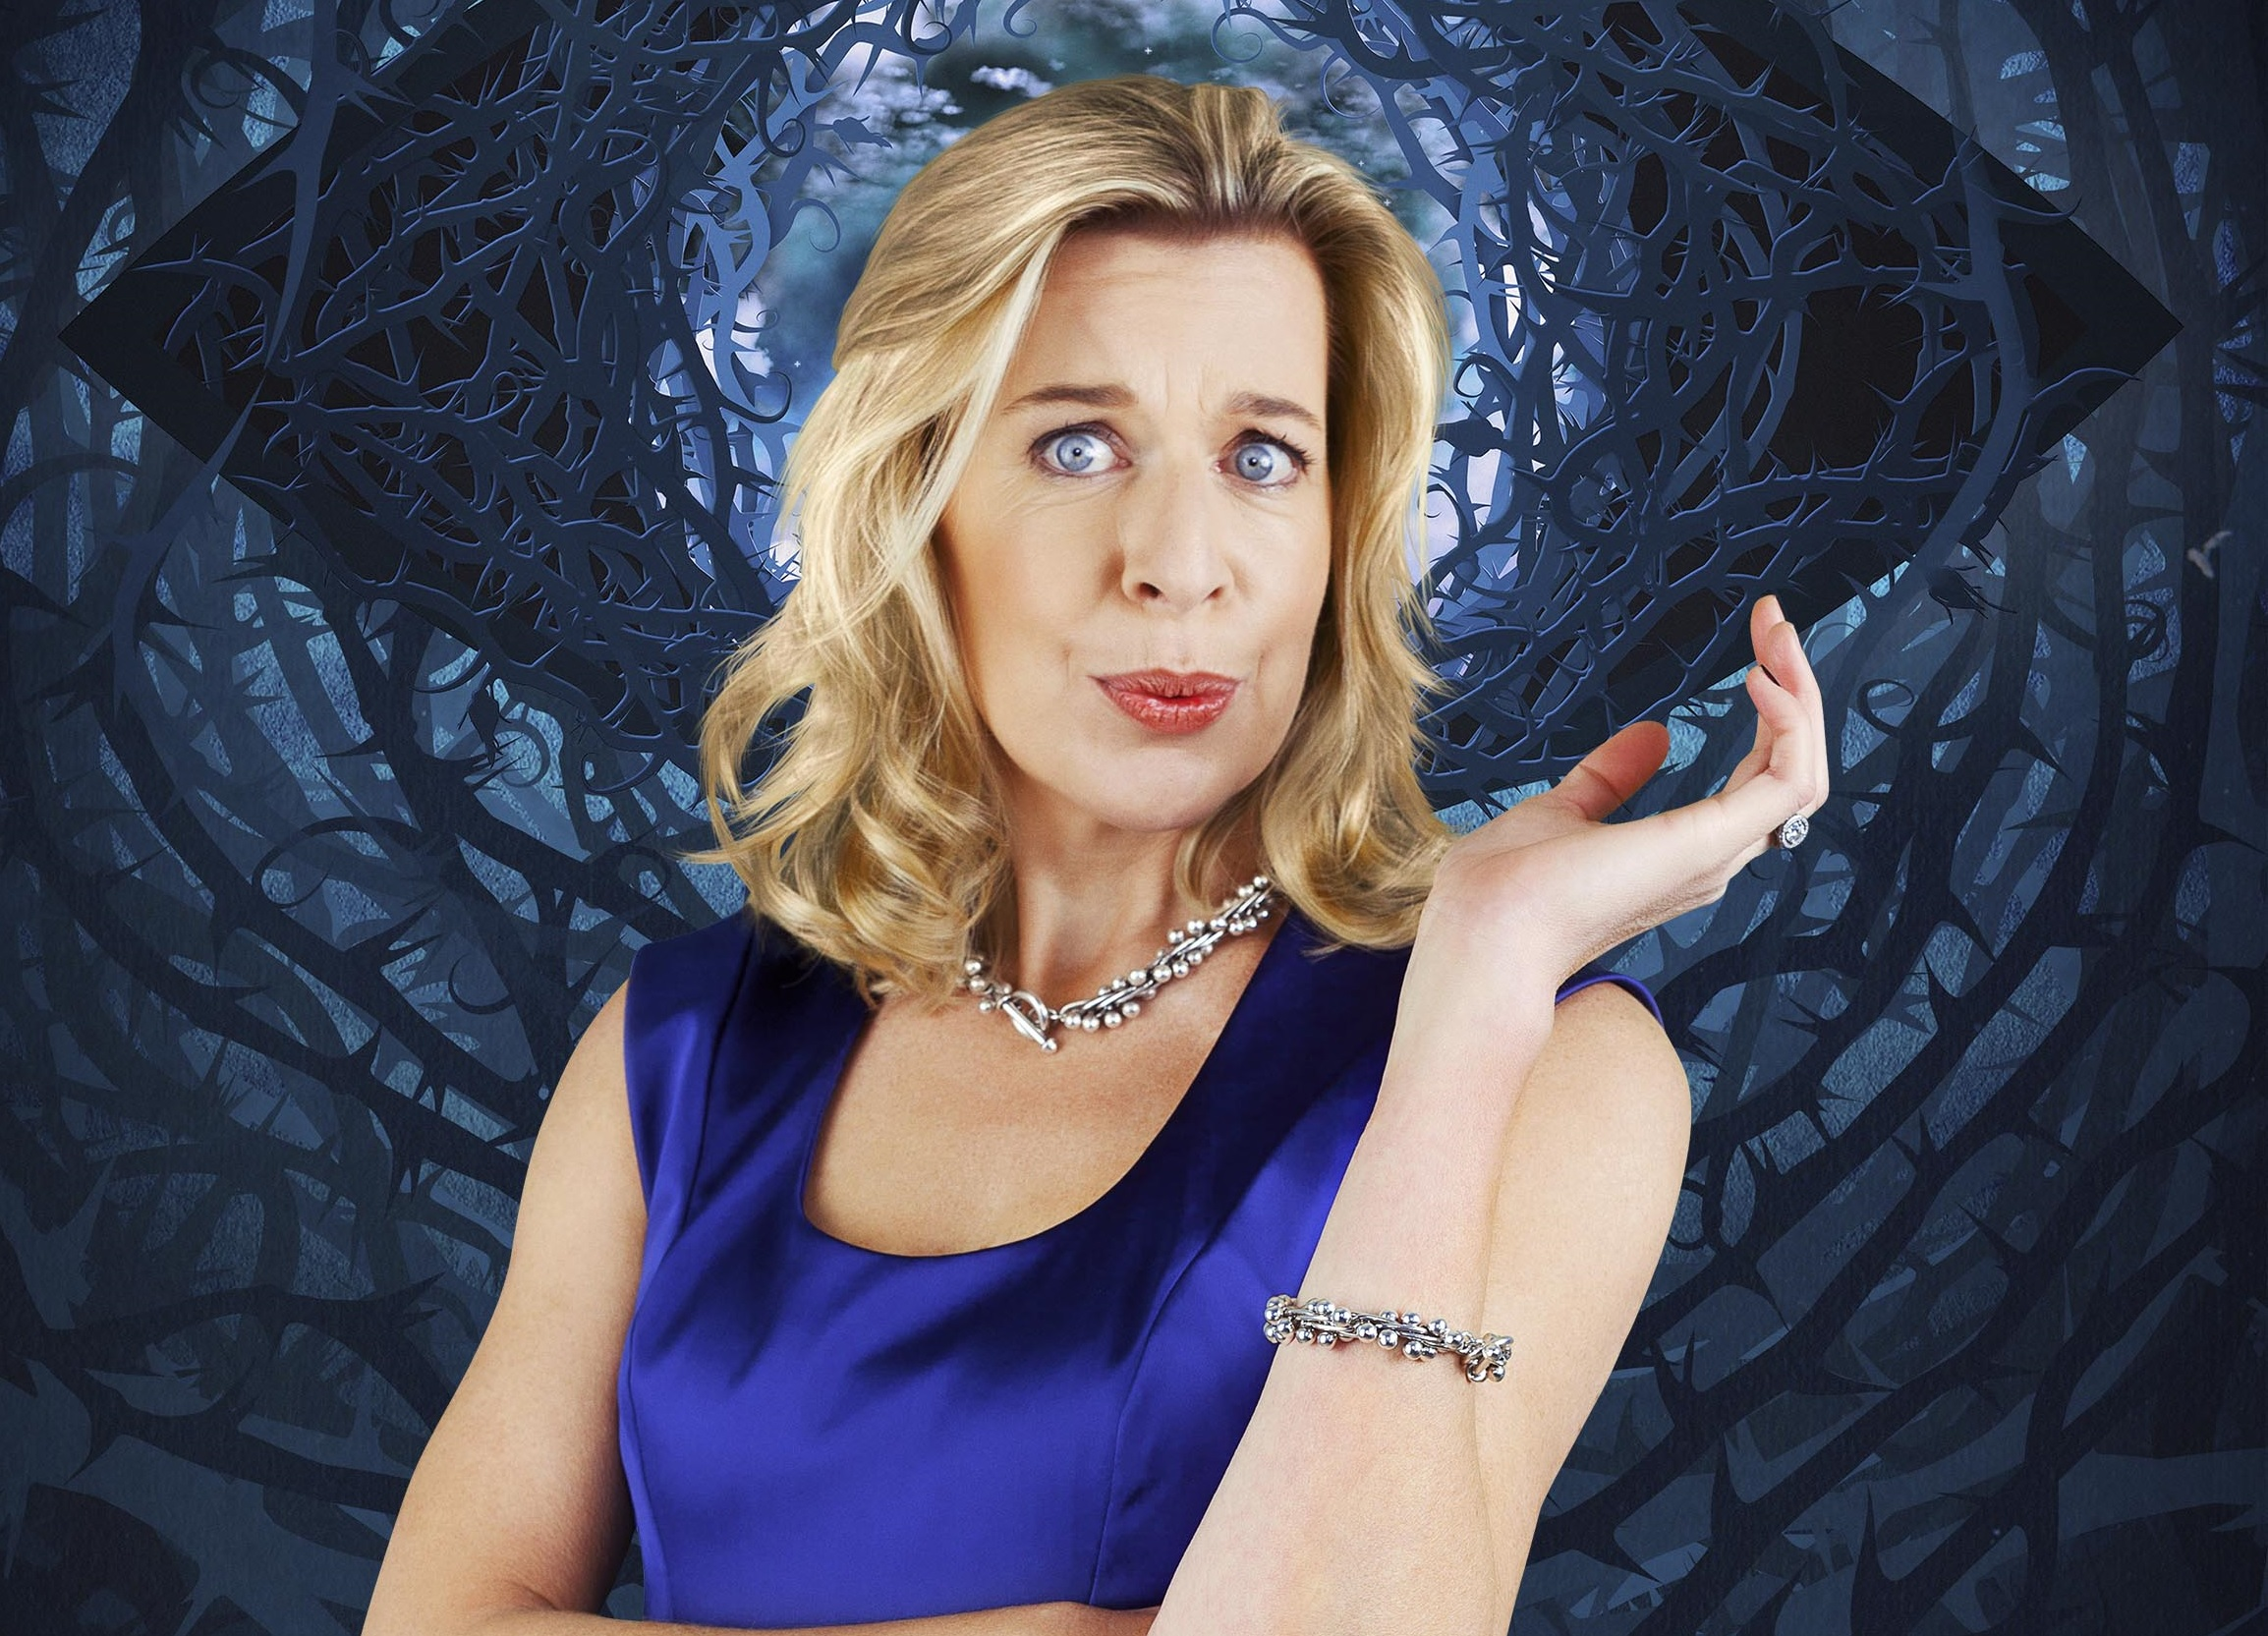 APRIL FOOLS: Katie Hopkins to replace Emma as BBBOTS co-host